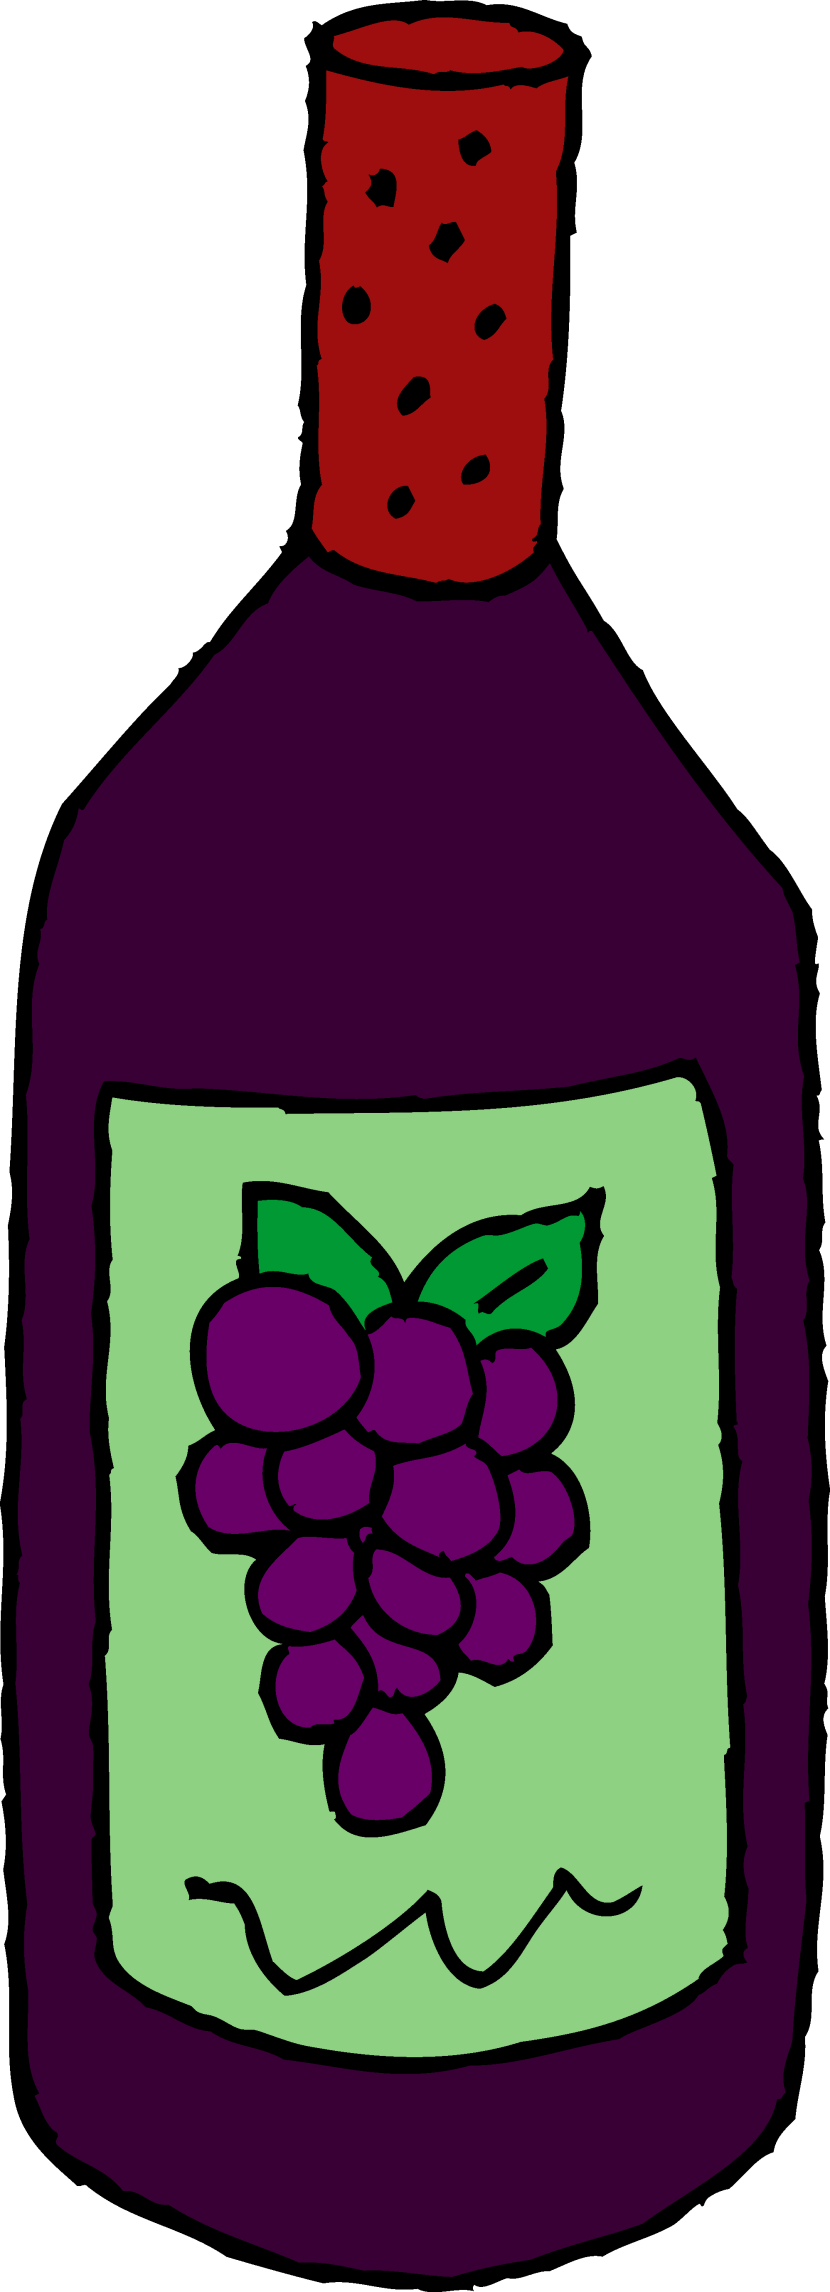 Wine clipart Images 6 for Wine art